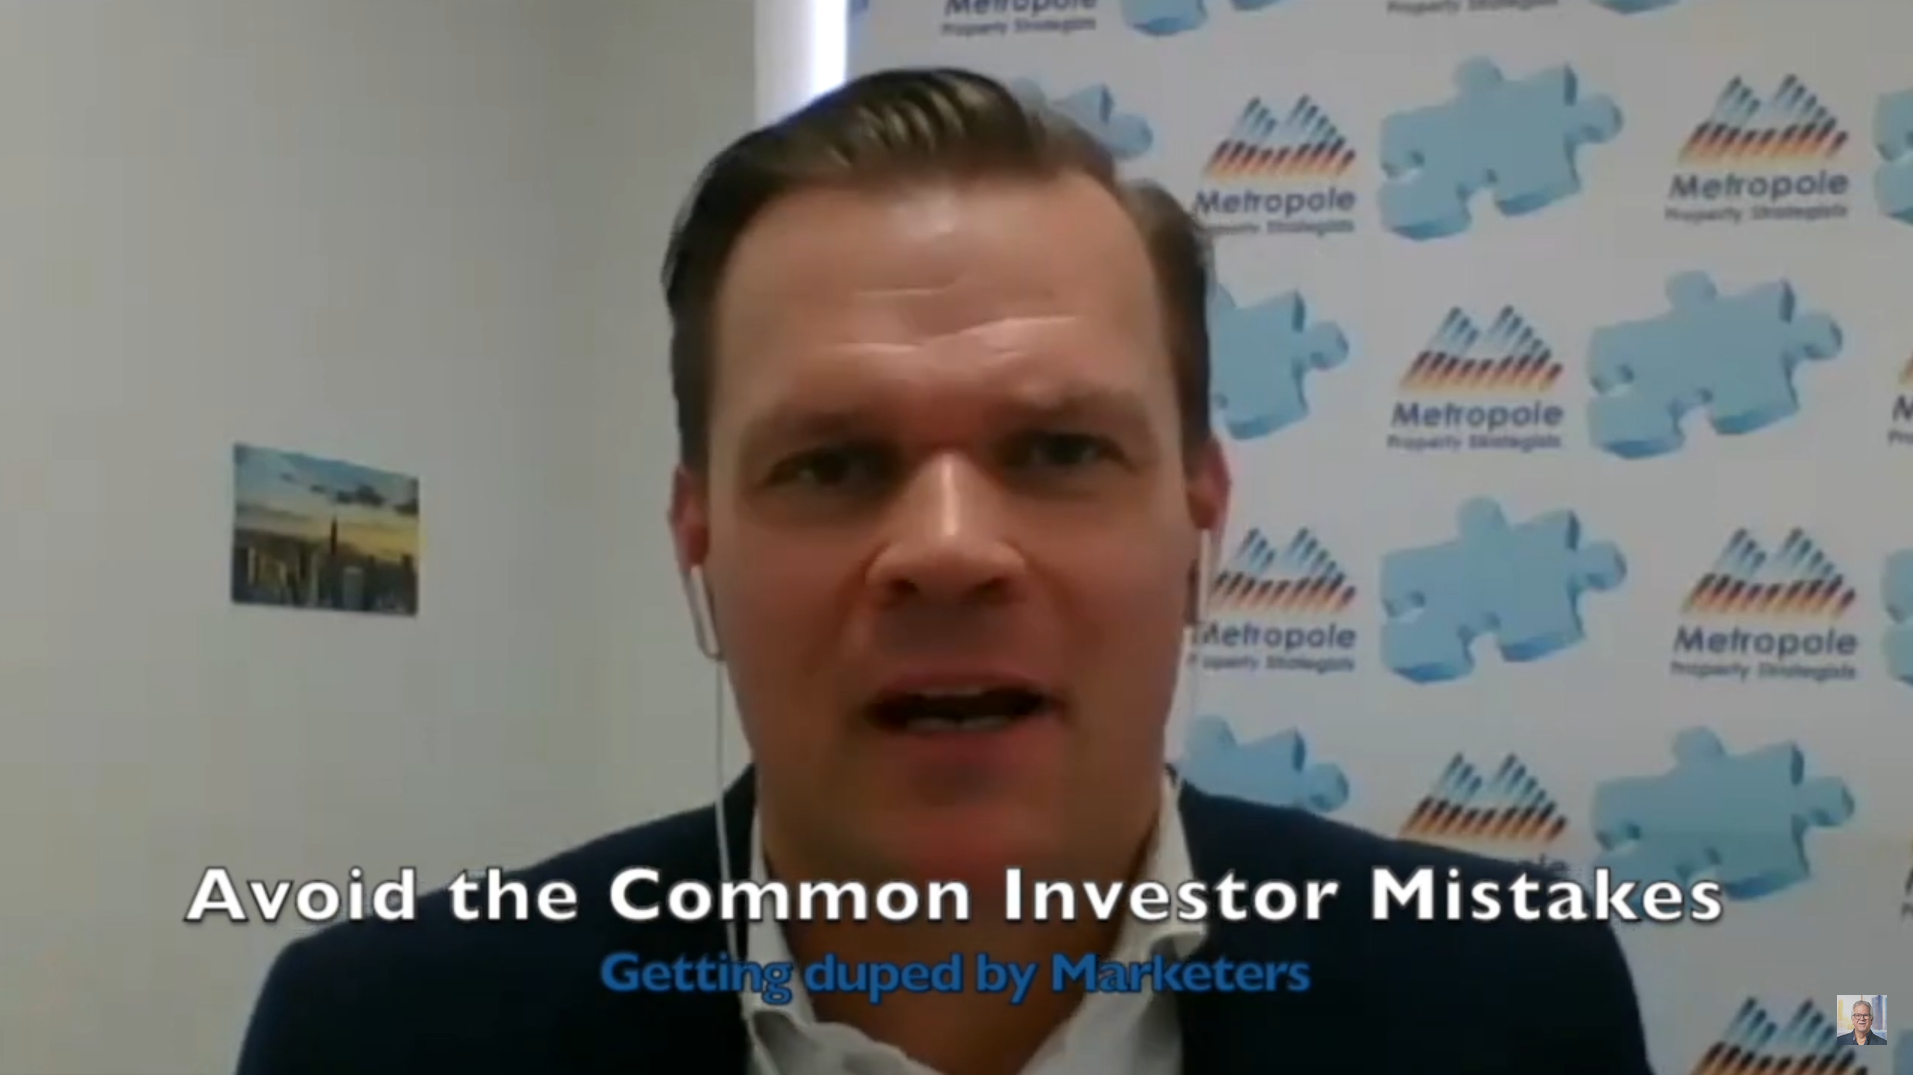 Avoid these marketing tricks | Common Investor Mistakes